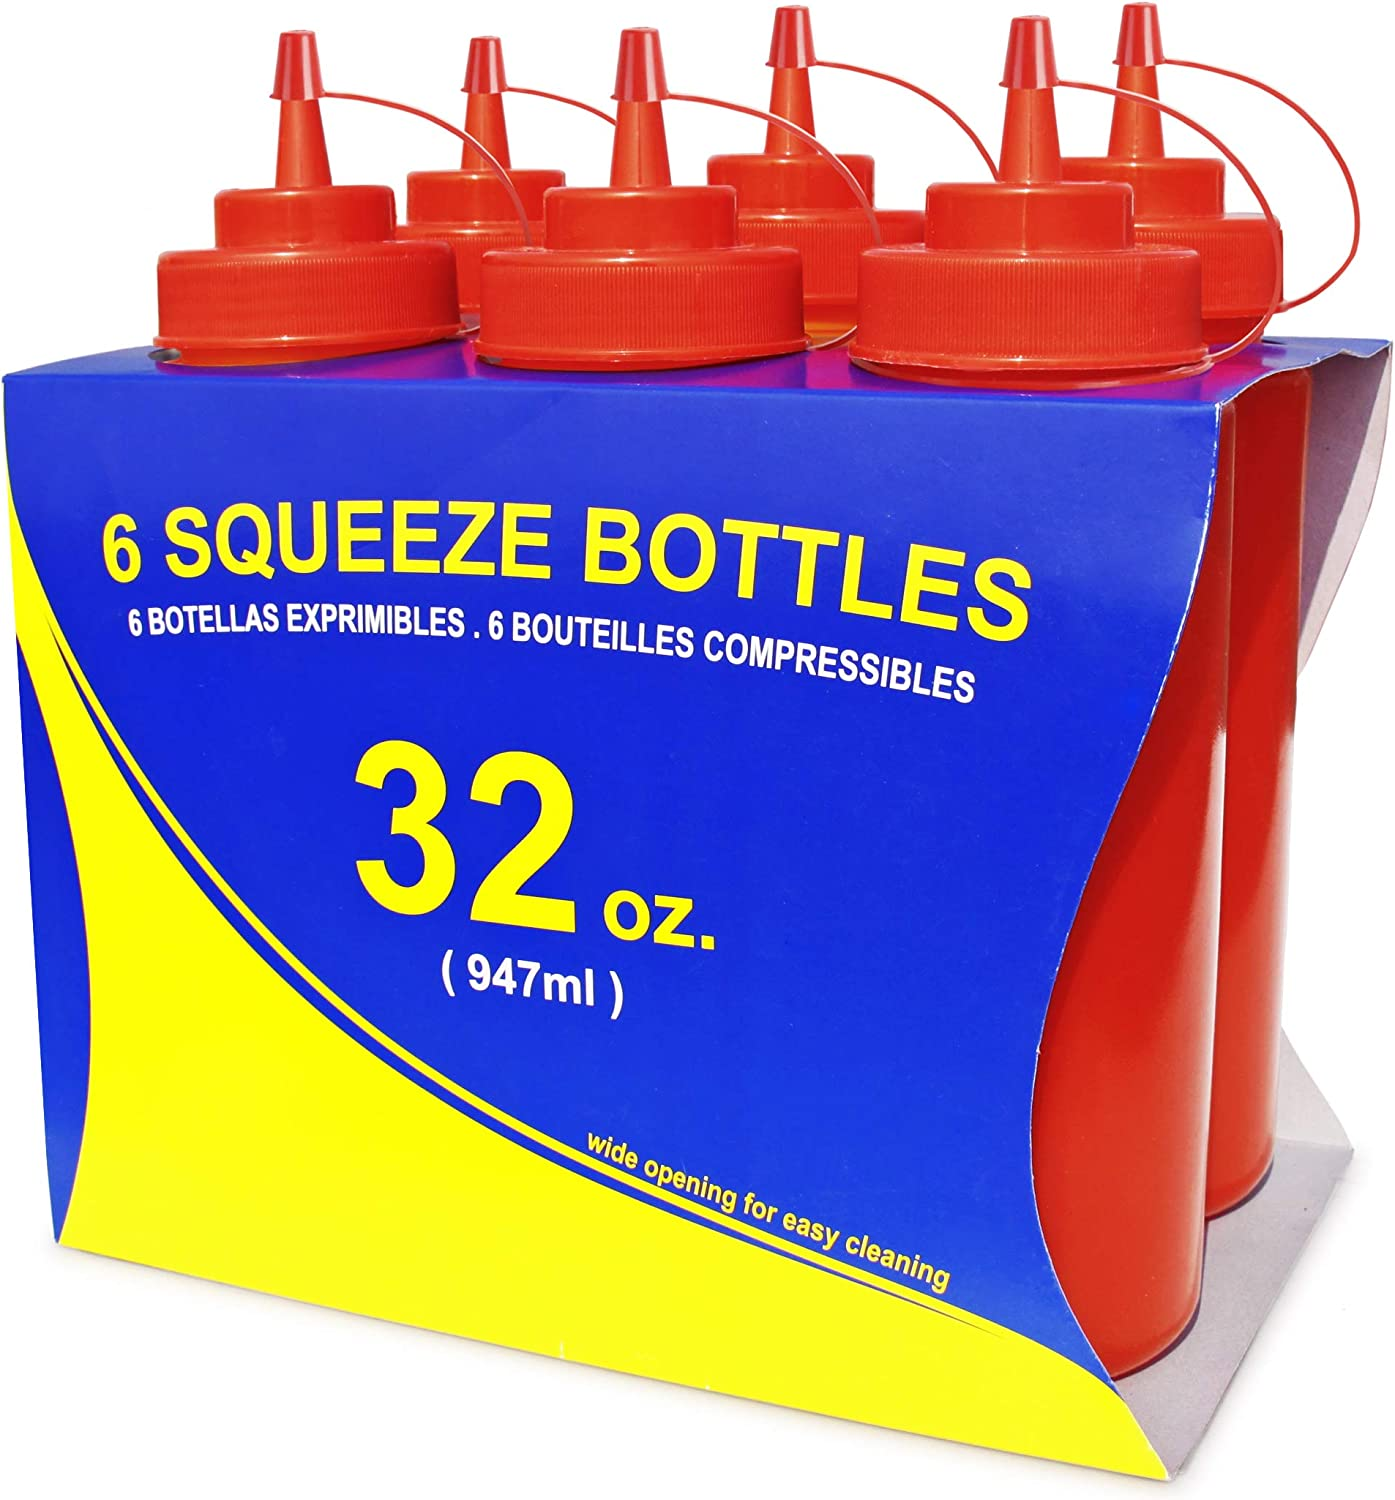 New Star Foodservice 26436 Squeeze Bottles, Plastic, Wide Mouth, 32 oz, Red, Pack of 6